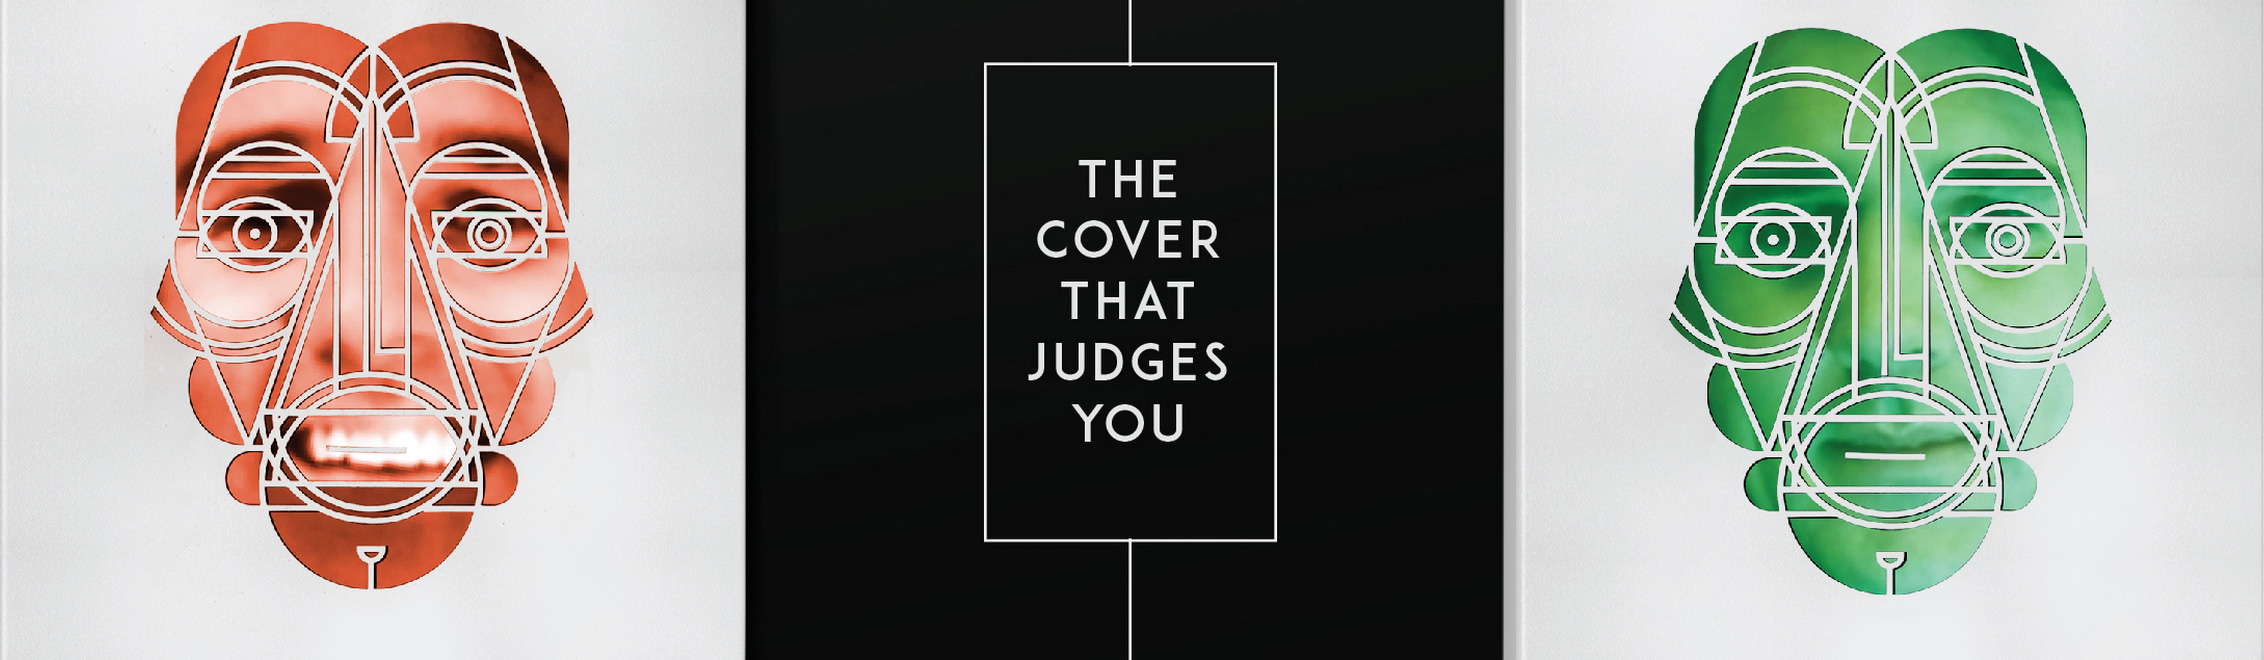 the-cover-that-judges-you